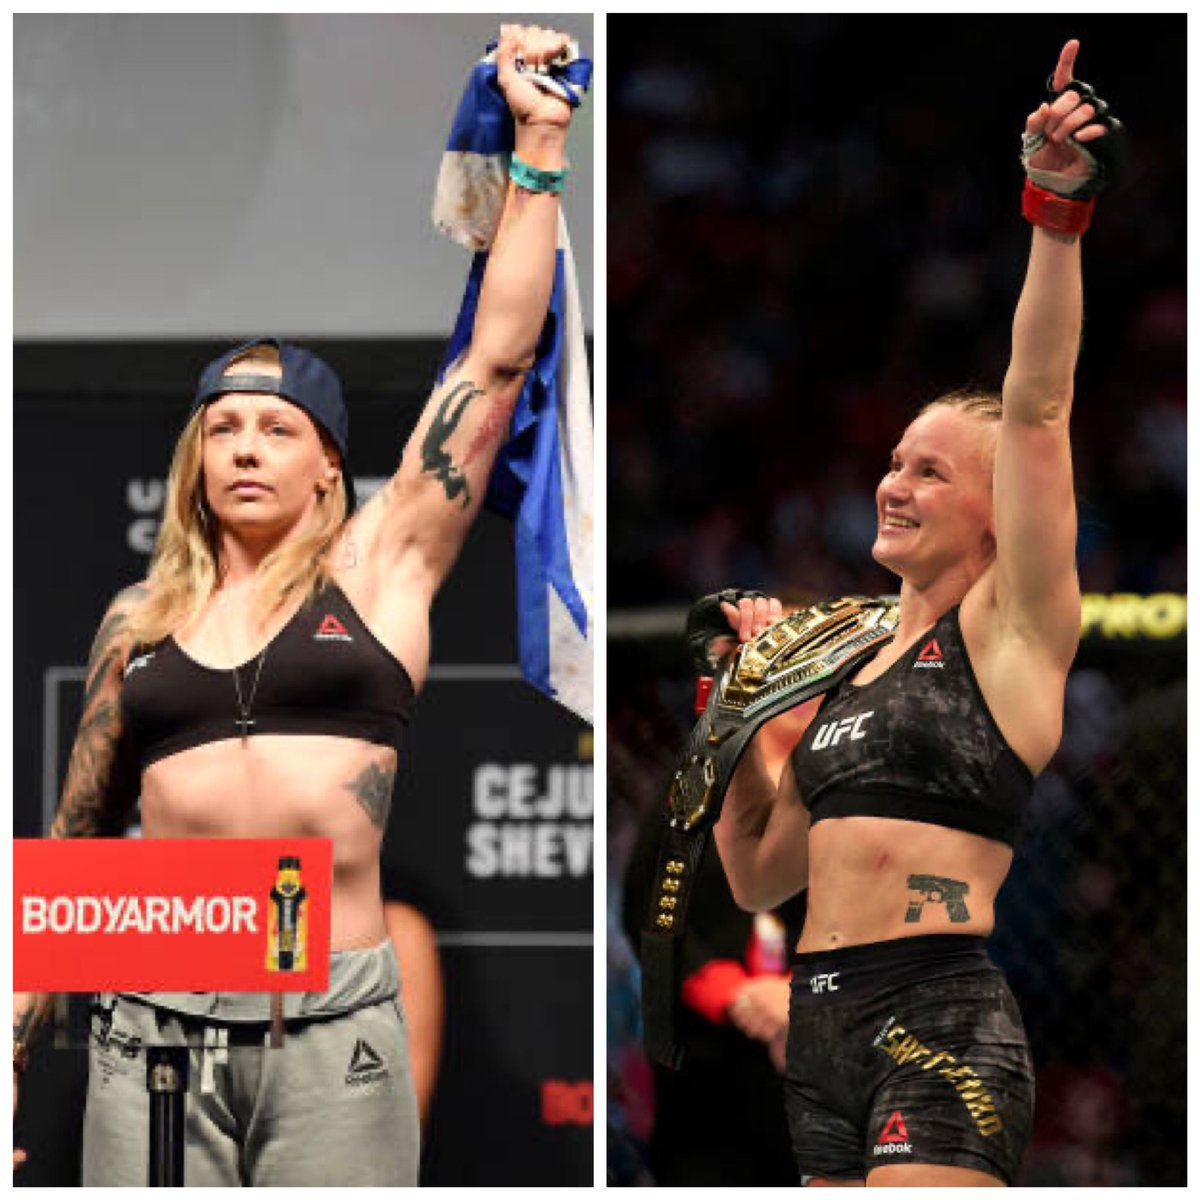 Breaking: Valentina Shevchenko's (@BulletValentina) next title defense will come against Joanne Calderwood (@DRkneevil) at UFC 251 on June 6. Both sides have agreed to the fight, per sources. More details coming to ESPN shortly.